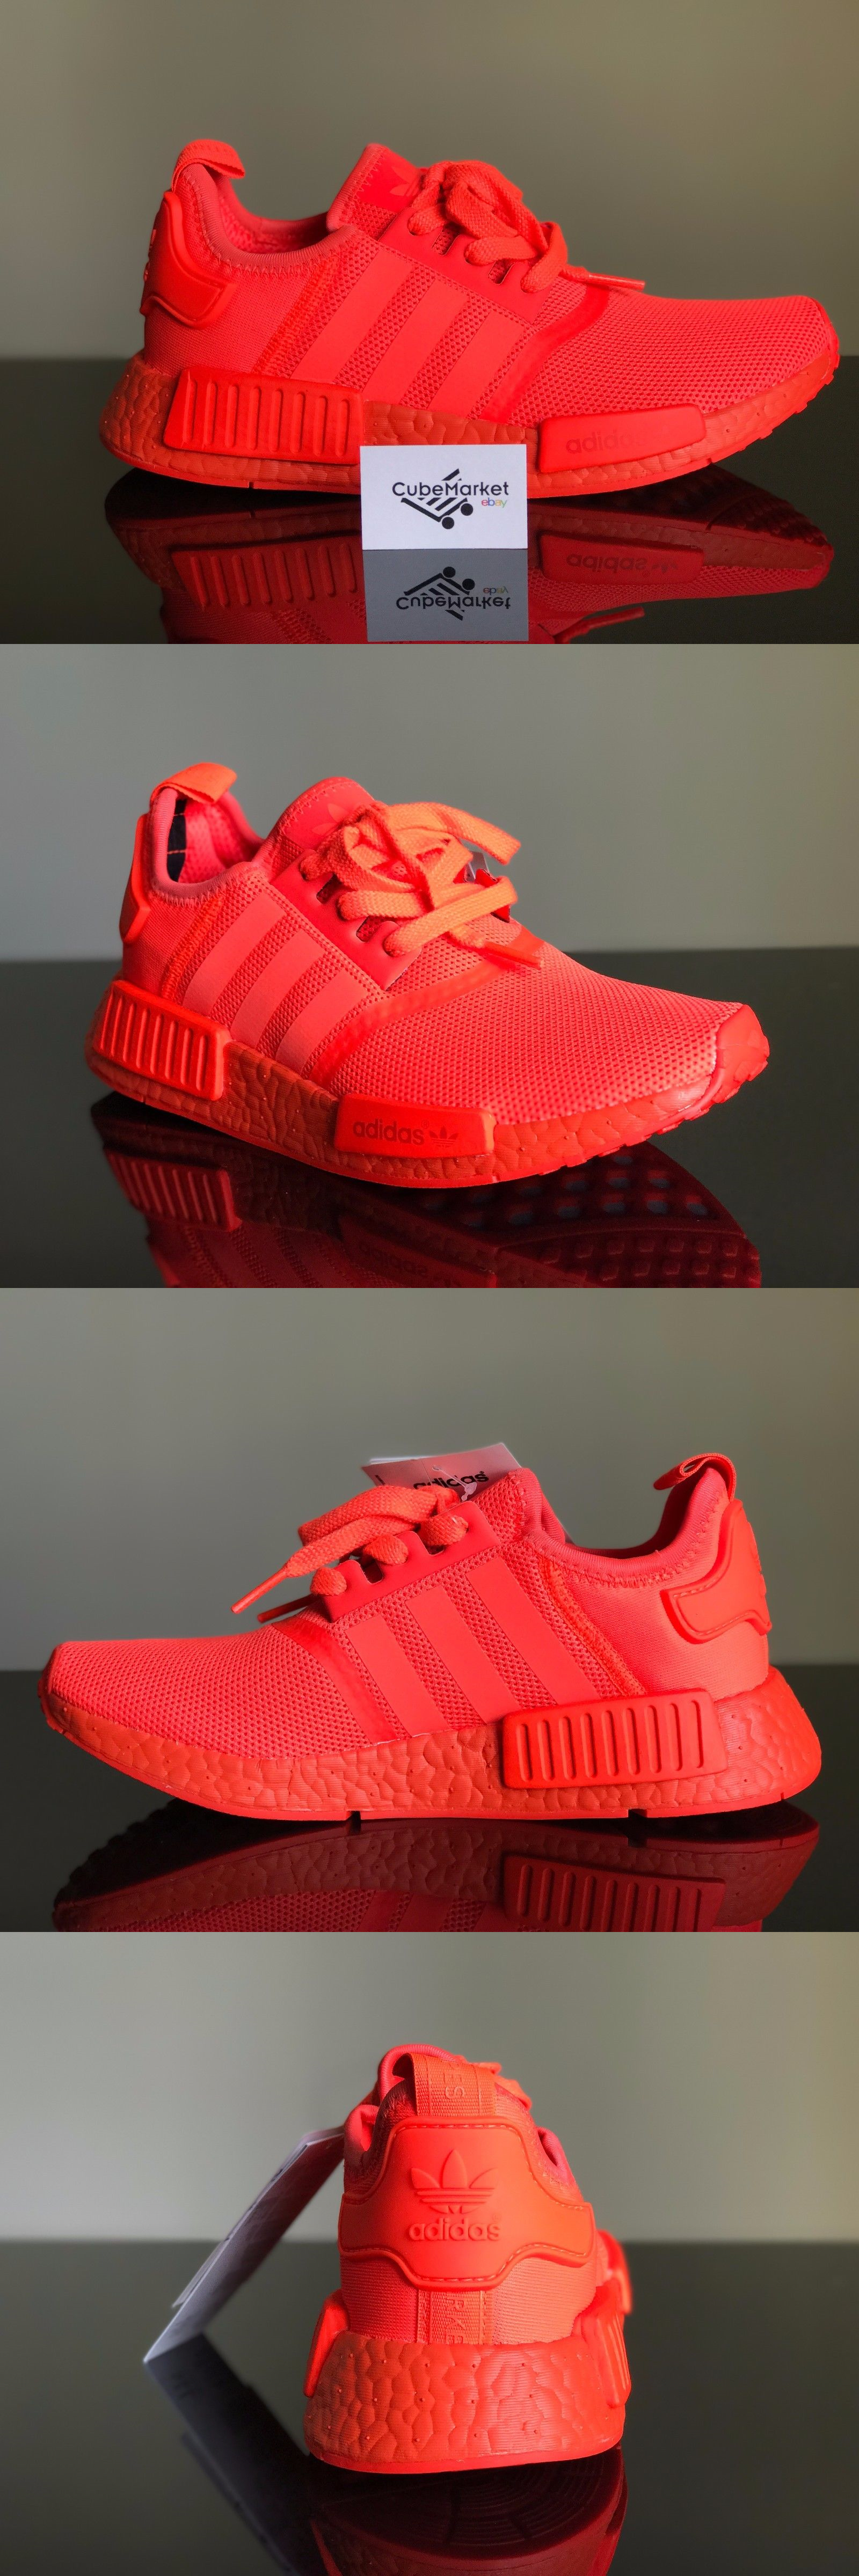 61e861623 Men 158952  New Men S Adidas Nmd R1 Solar Red Triple Red S31507 Size ...